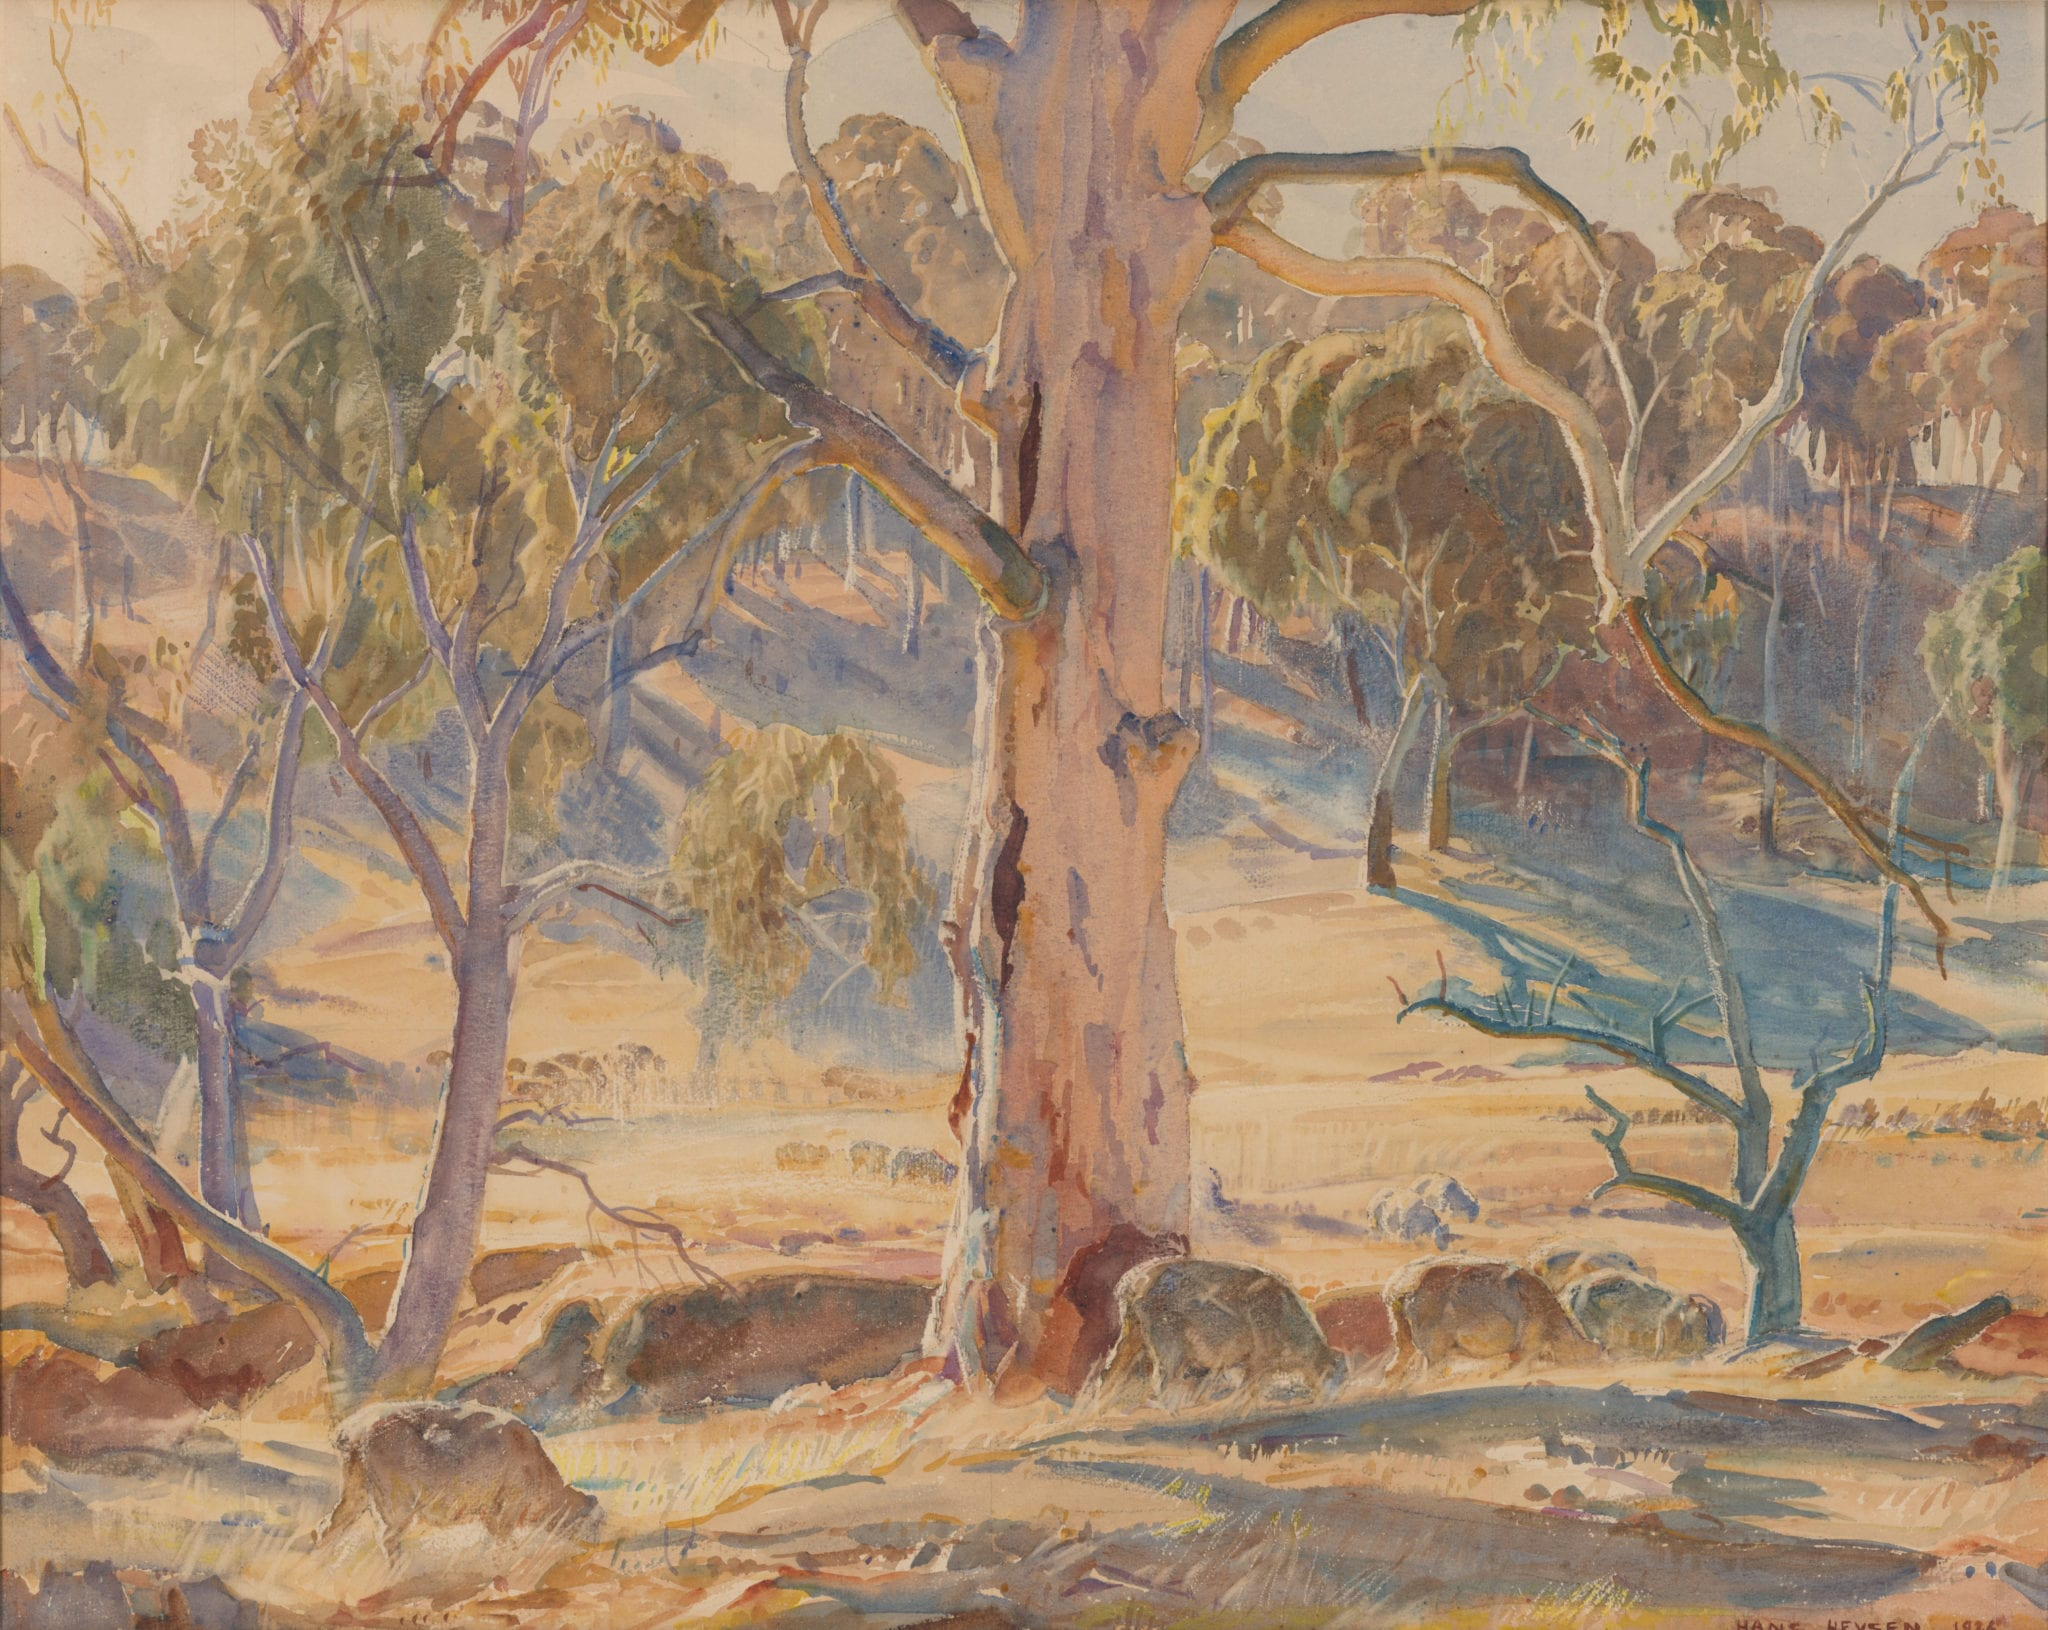 Hans Heysen, (b. 1877 d. 1968), Summer afternoon, Ableside, 1936, Pencil and watercolour on paper 80.3 x 93.1 cm. CBUS Collection of Australian Art.